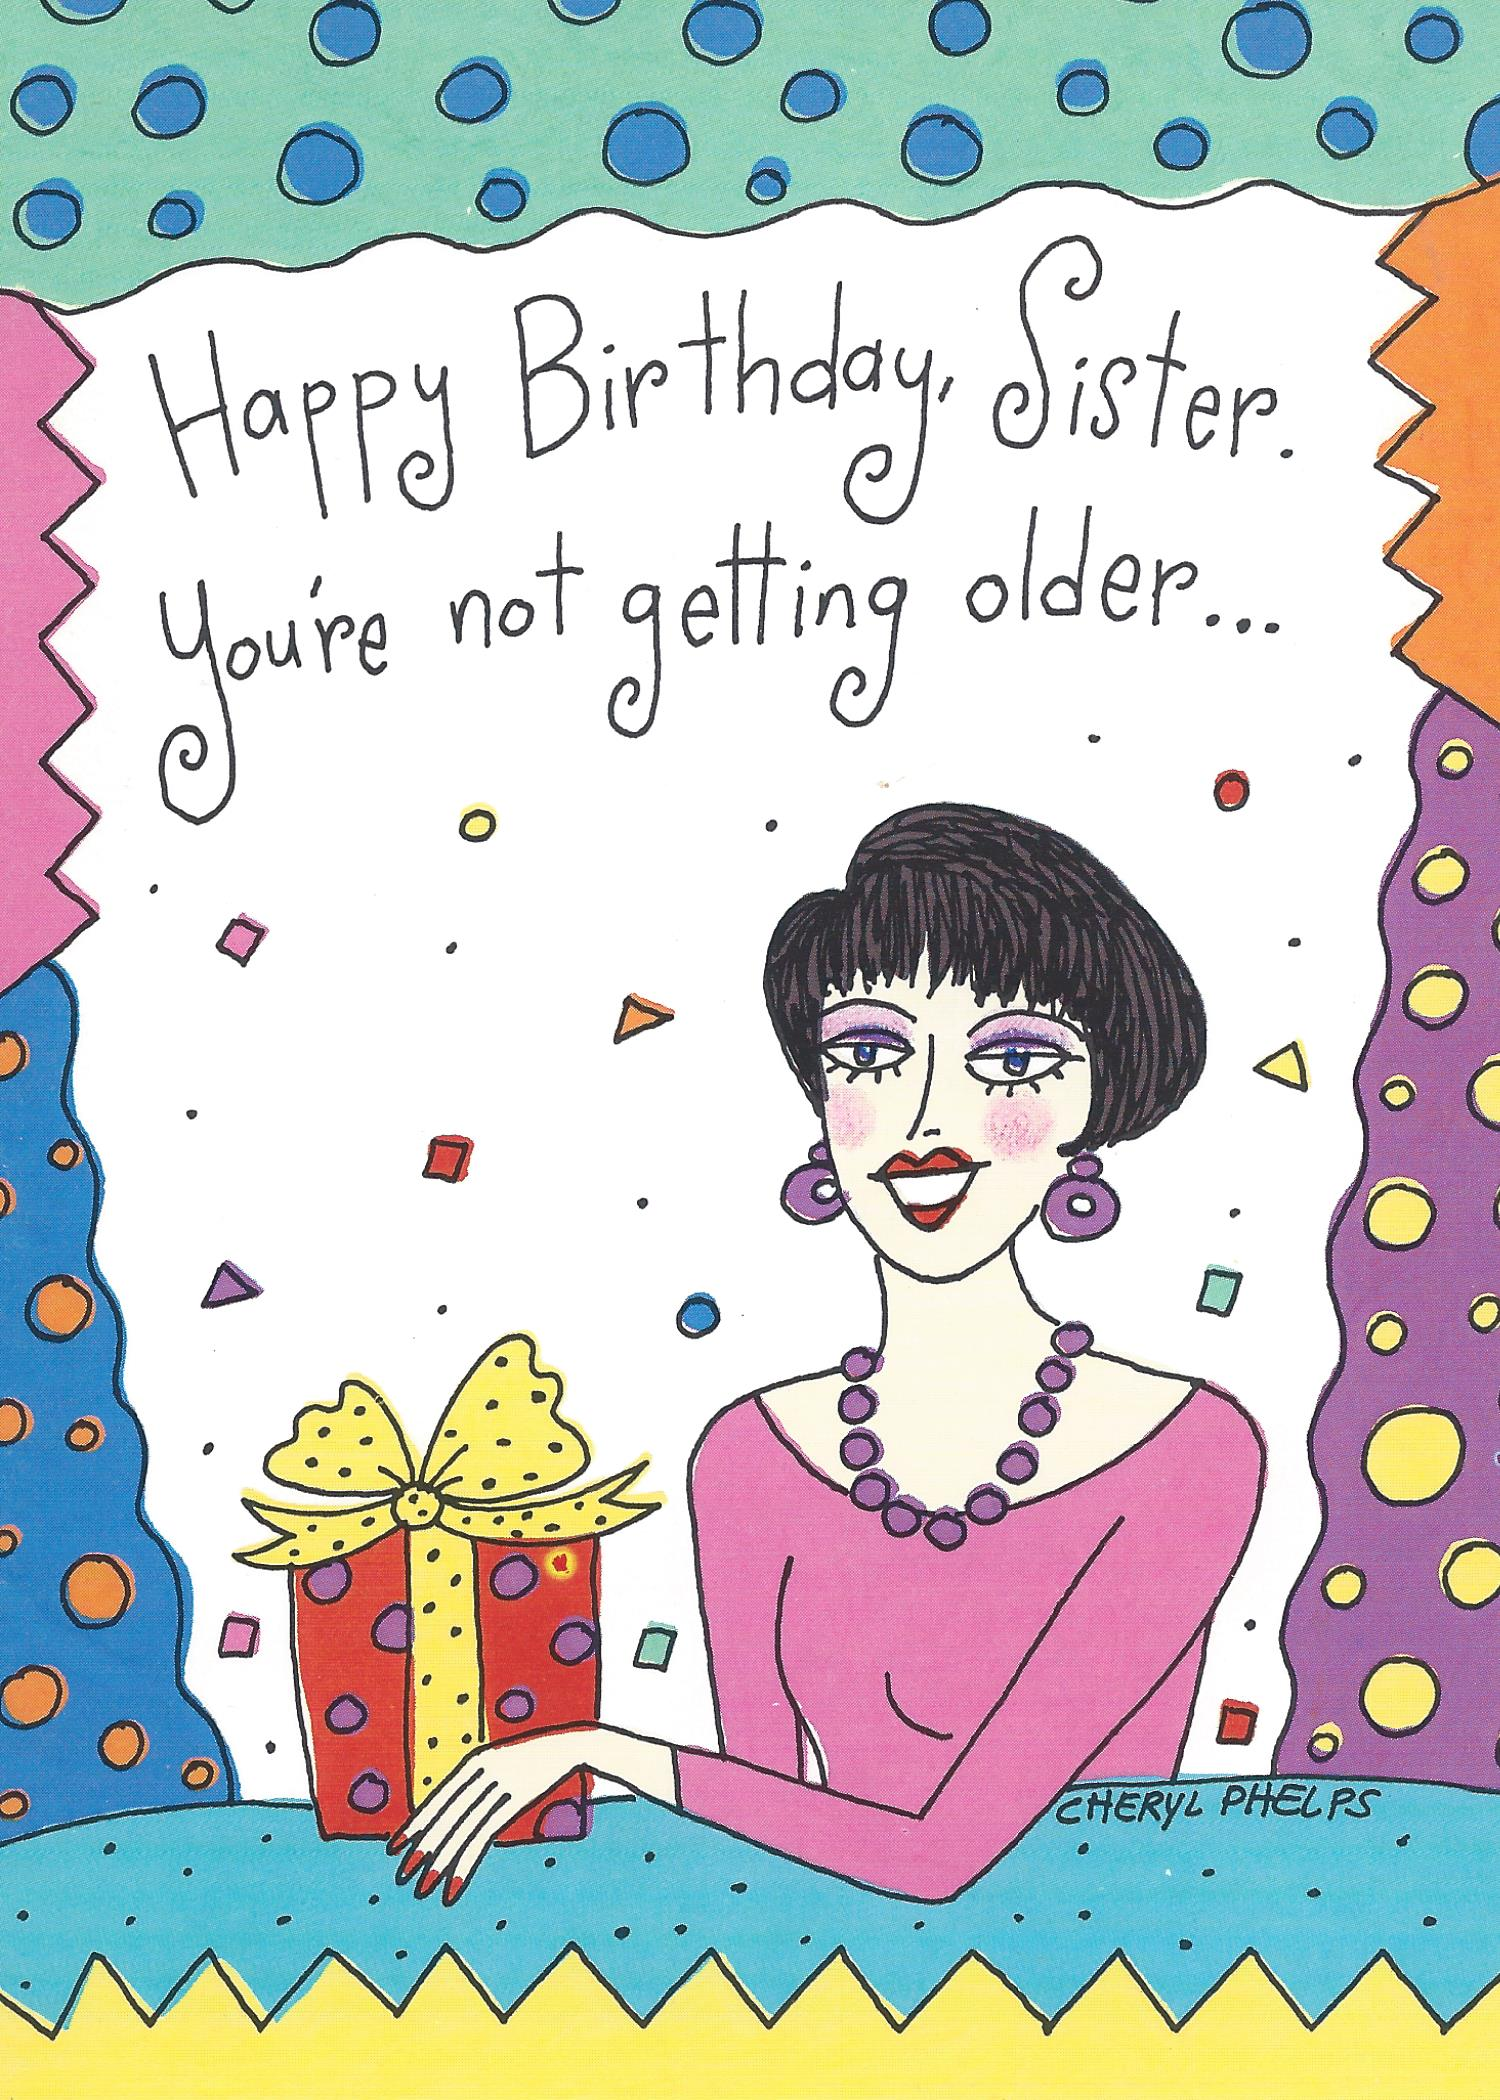 Happy Birthday, Sister. You're not getting older...